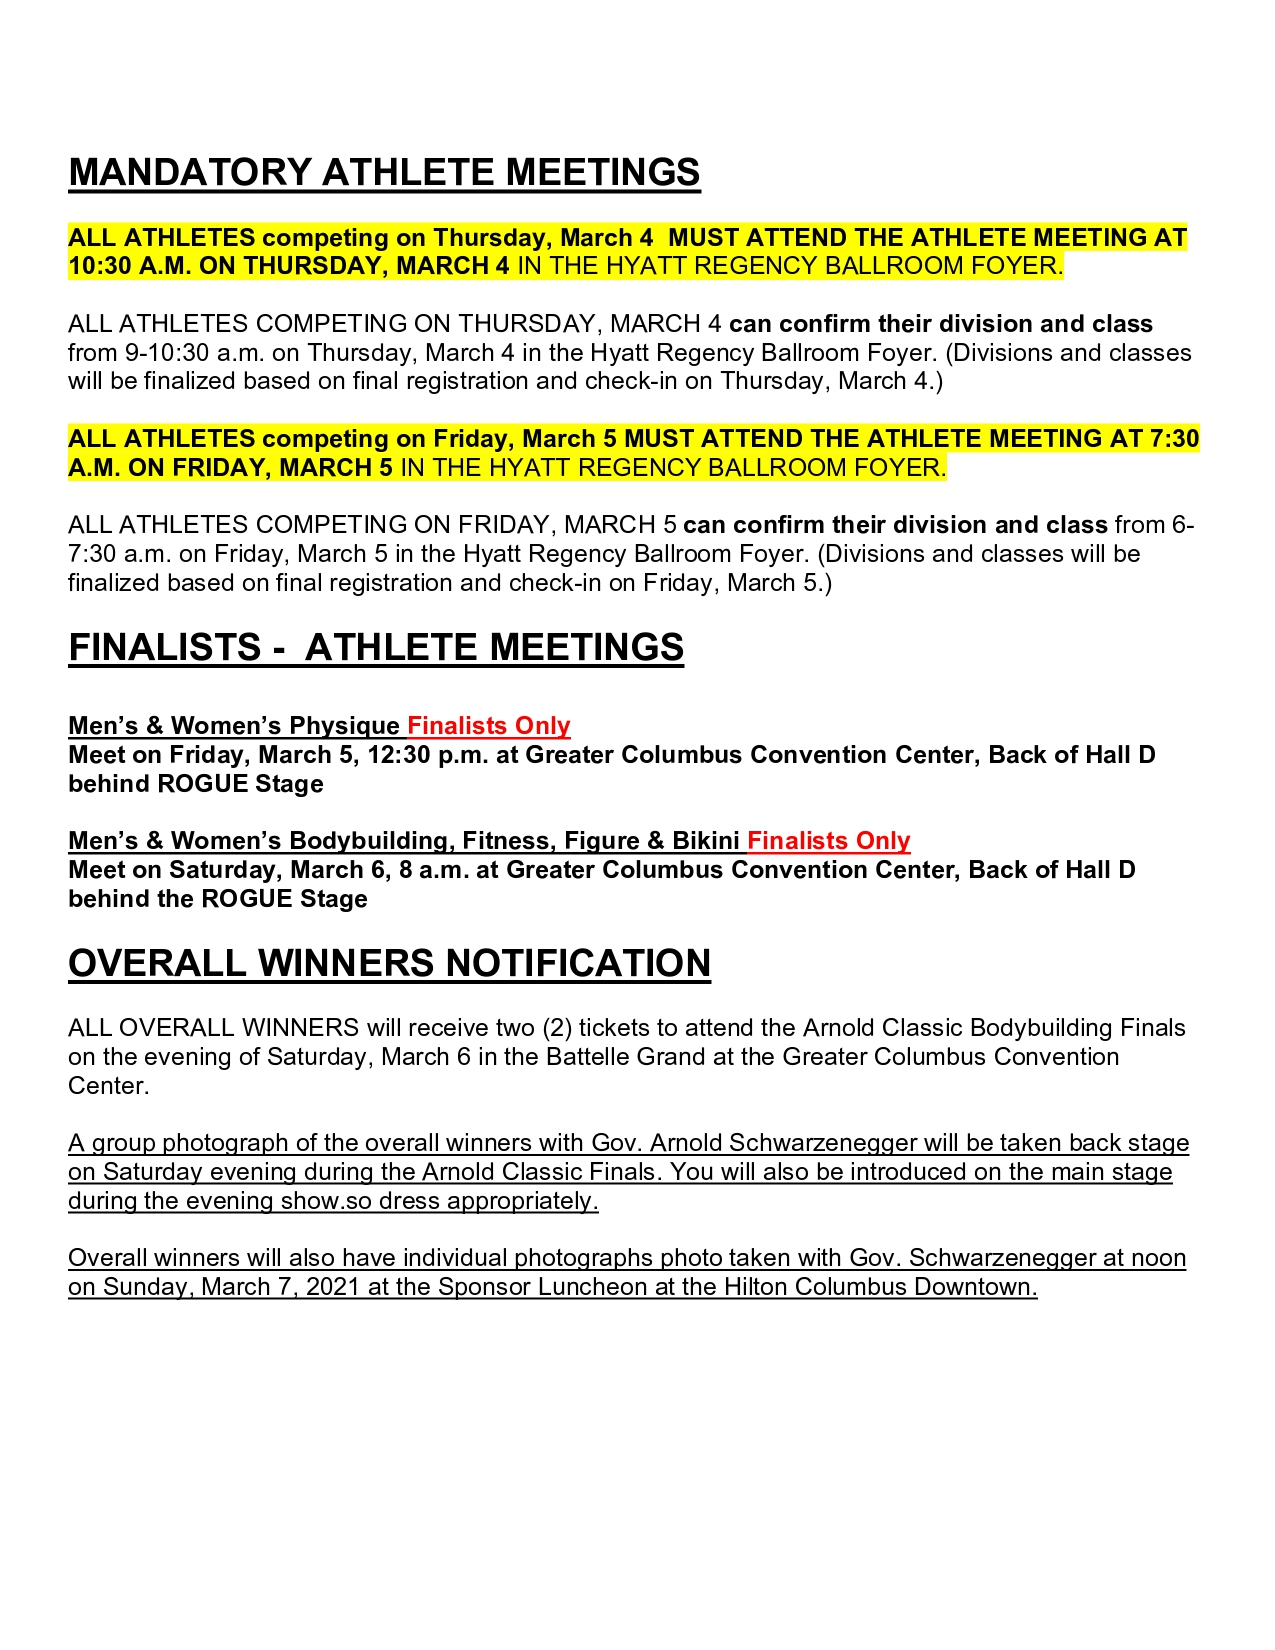 2021-Arnold-Amateur-Competitor-Information-8.3.21_page-0005